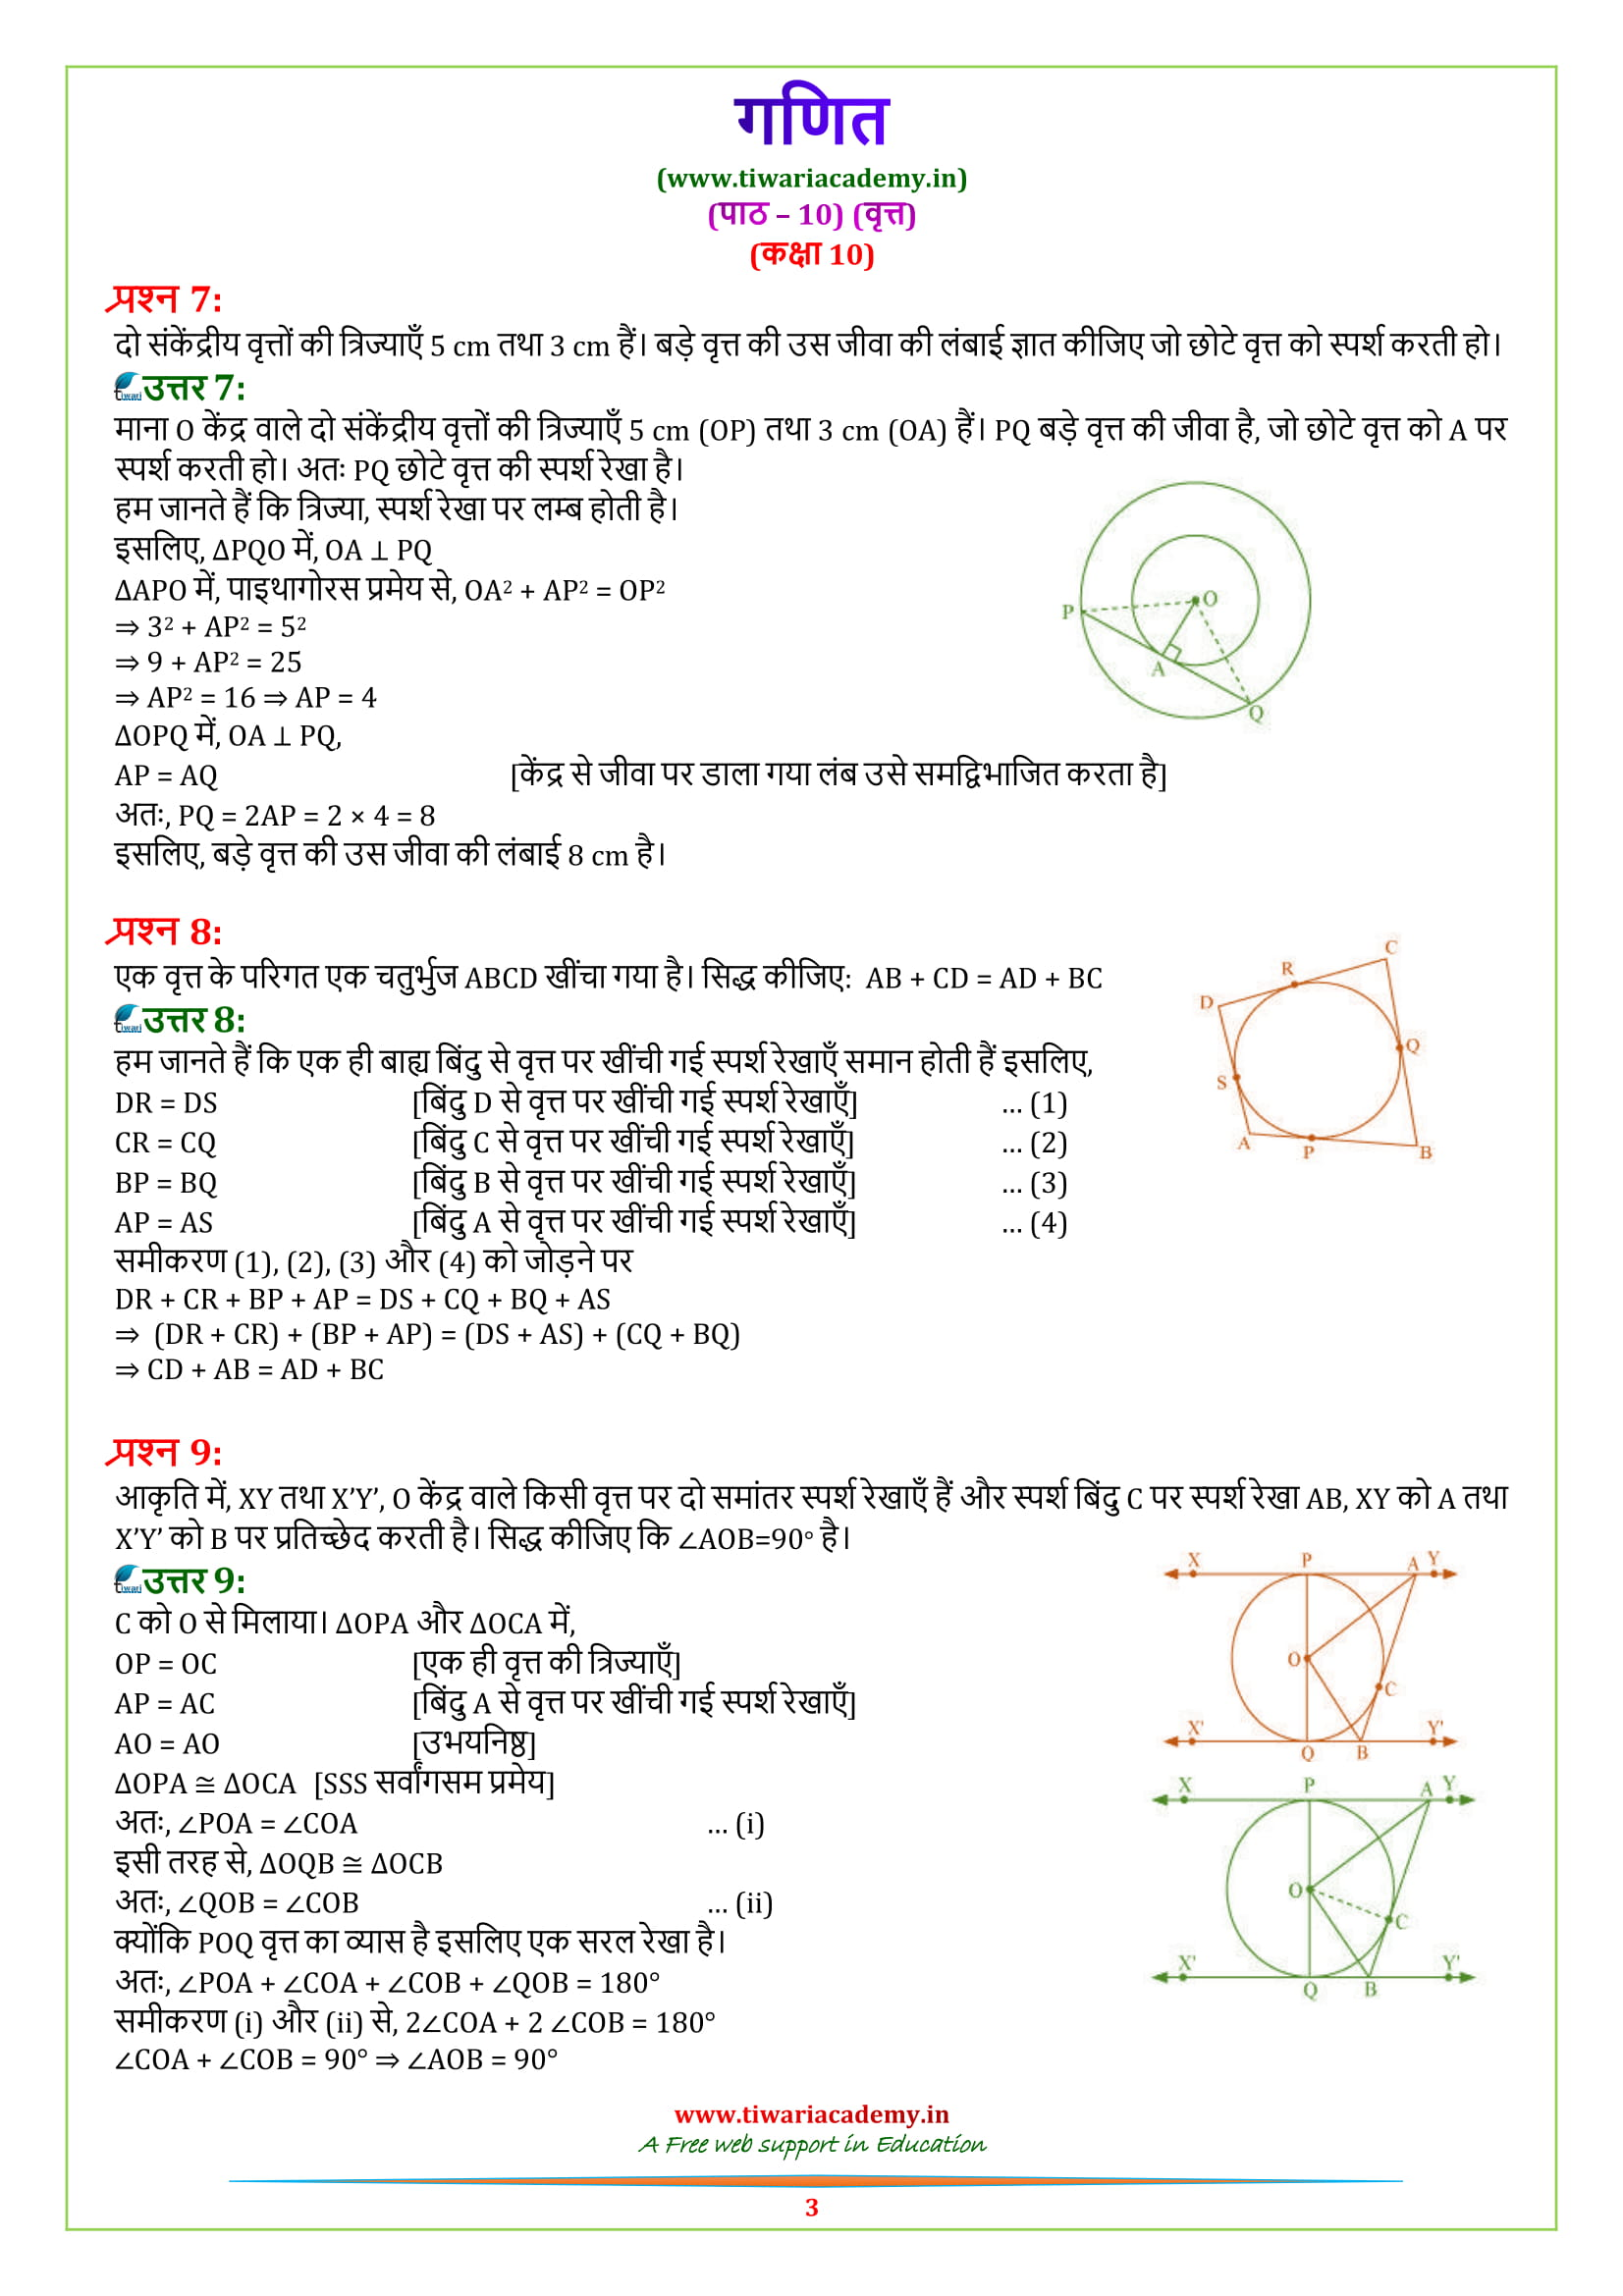 NCERT Solutions for class 10 Maths Chapter 10 Exercise 10.2 for up board in hindi medium